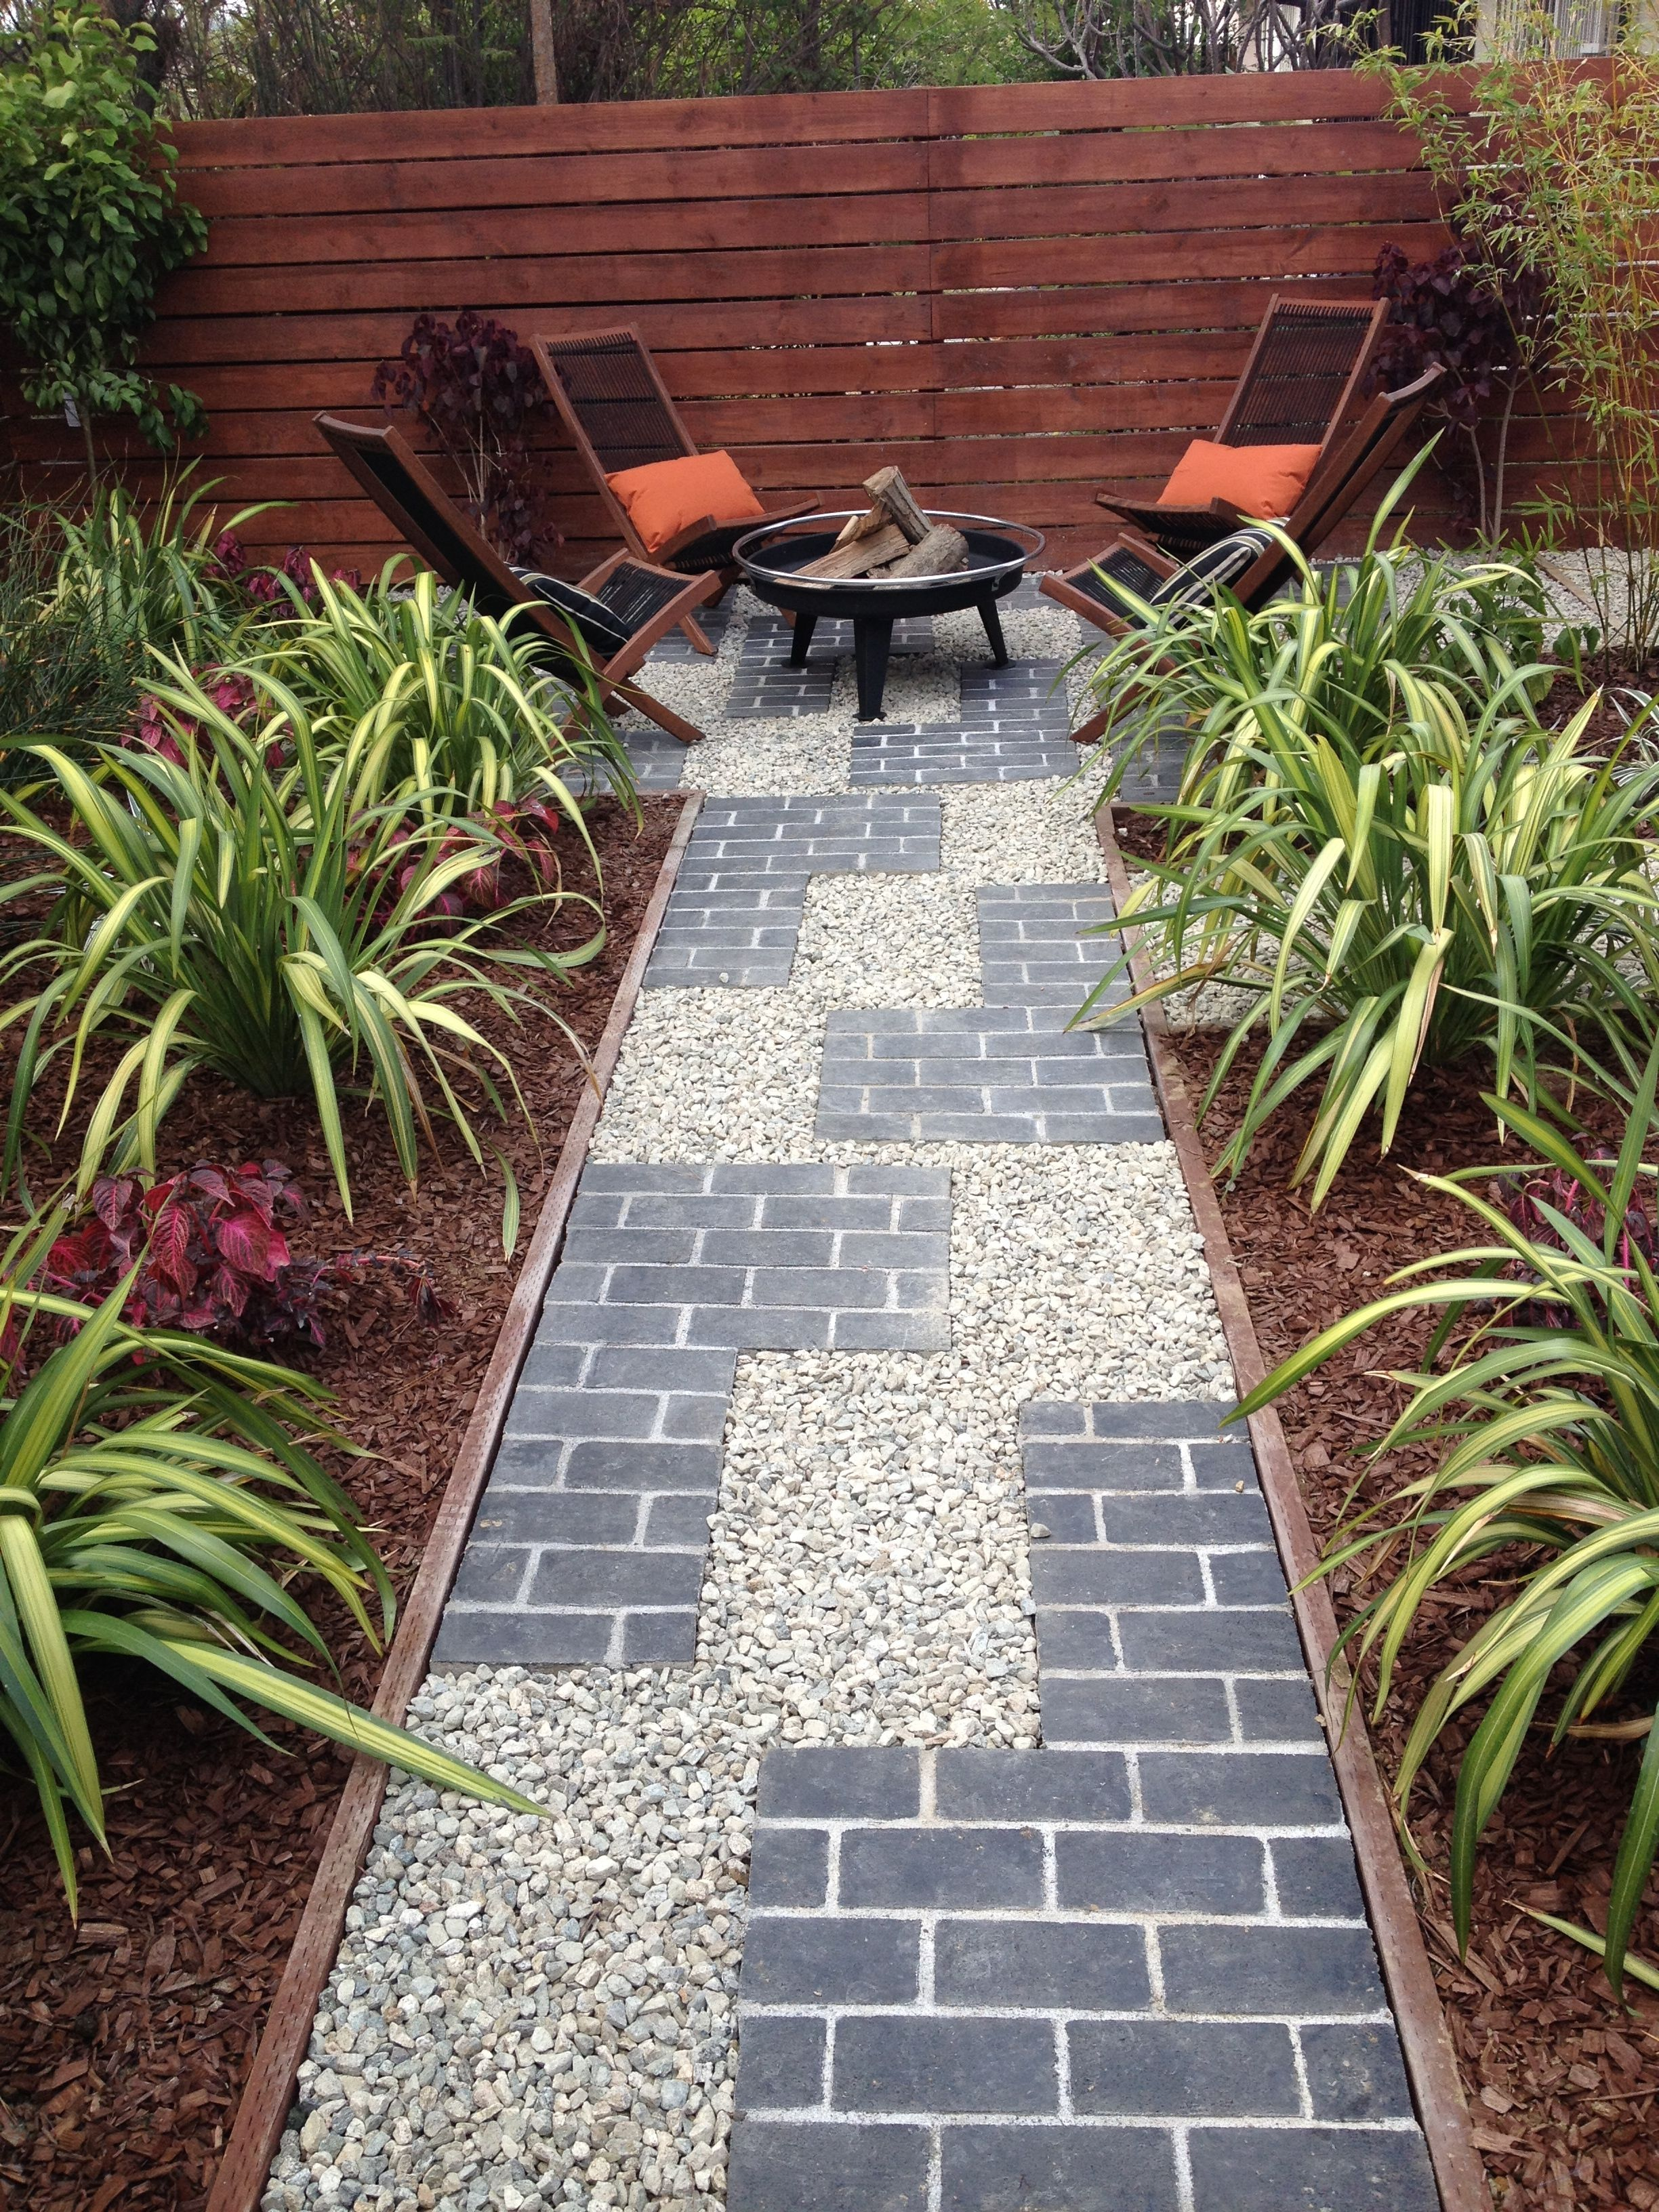 Tetris inspired pathway with grey brick and gravel for Wooden garden edging